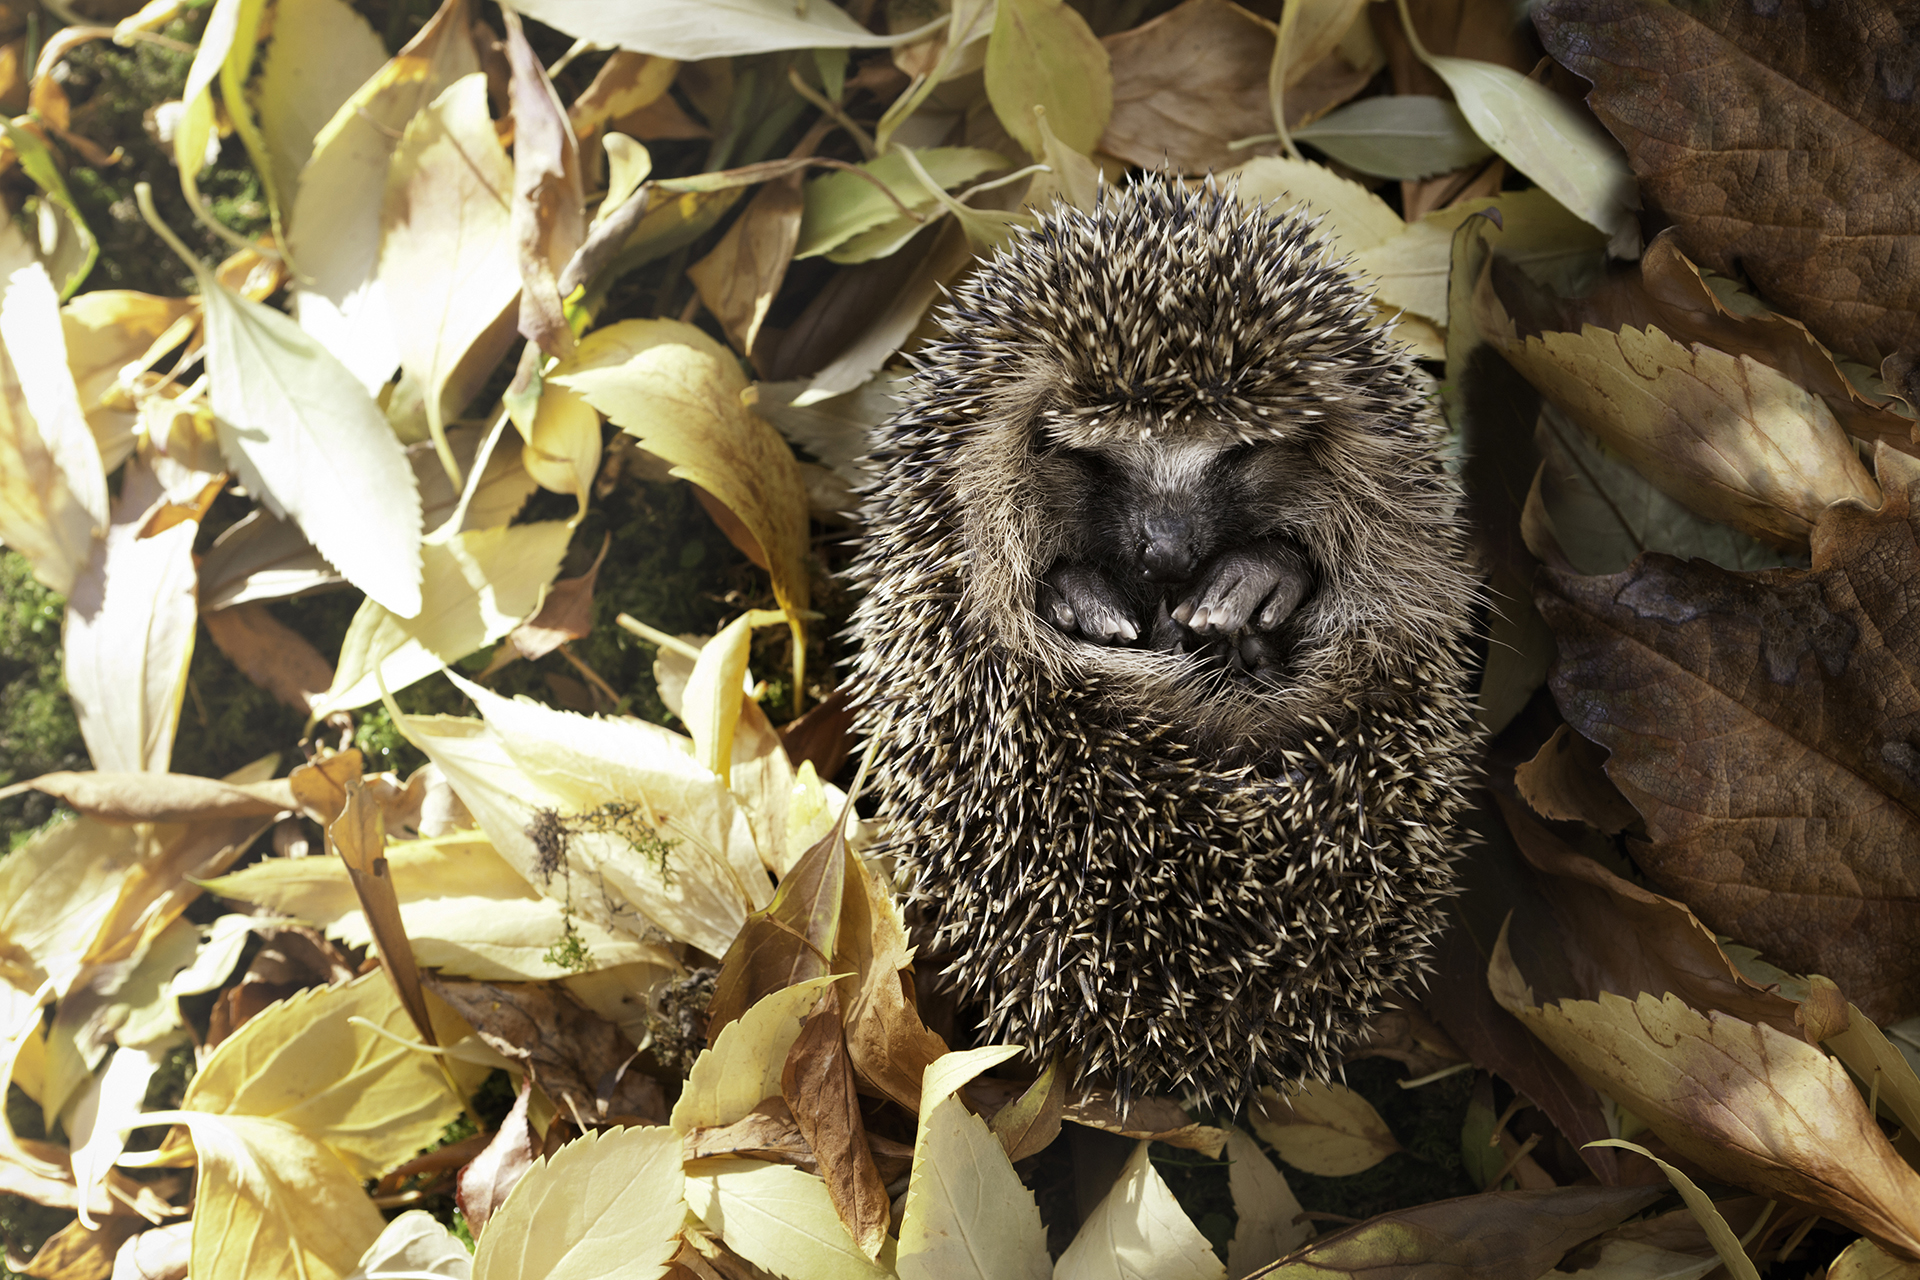 Baby Hedgehog Surrounded by Autumn Leaves